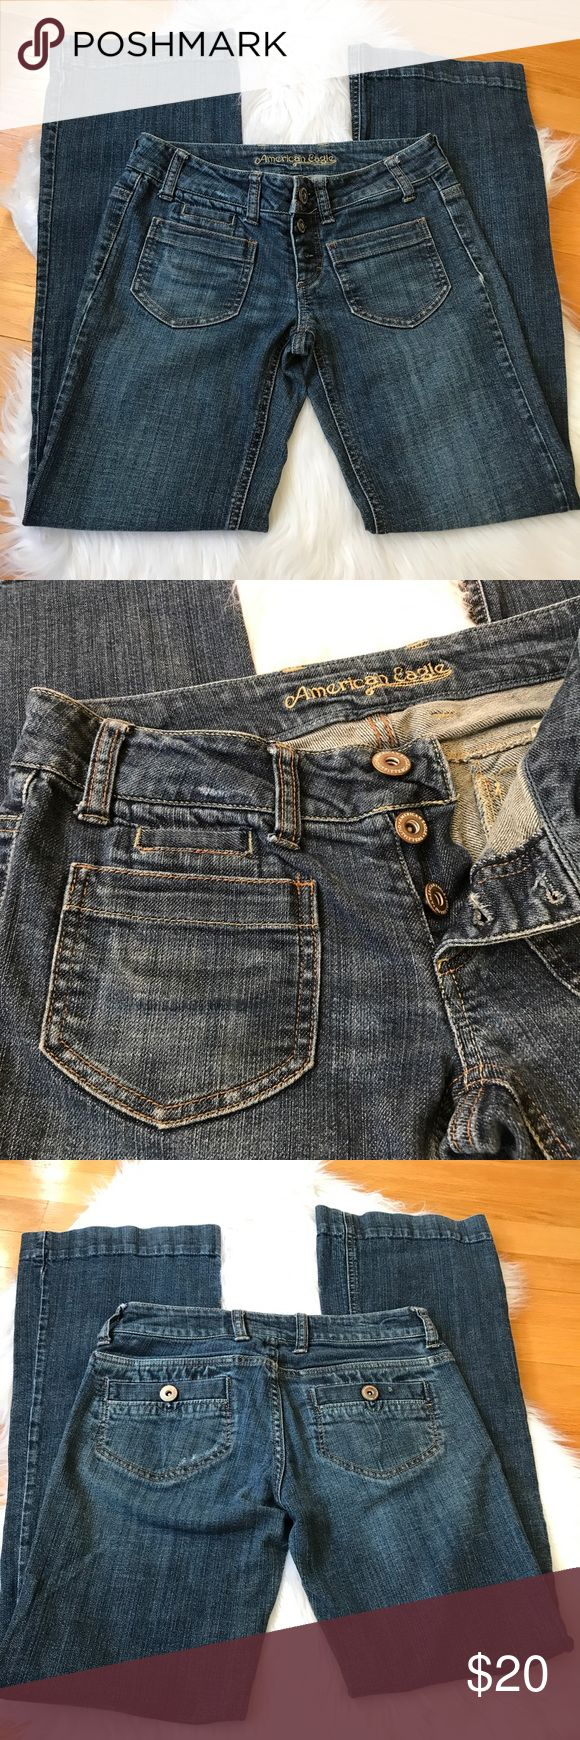 | American Eagle | Boot Cut Jeans Size 0 regular. Great condition American eagle boot cut jeans with cute pockets on the front. No stains or rips. Waist 14' legs 38' inseam 30' boot flare 9' American Eagle Outfitters Jeans Boot Cut